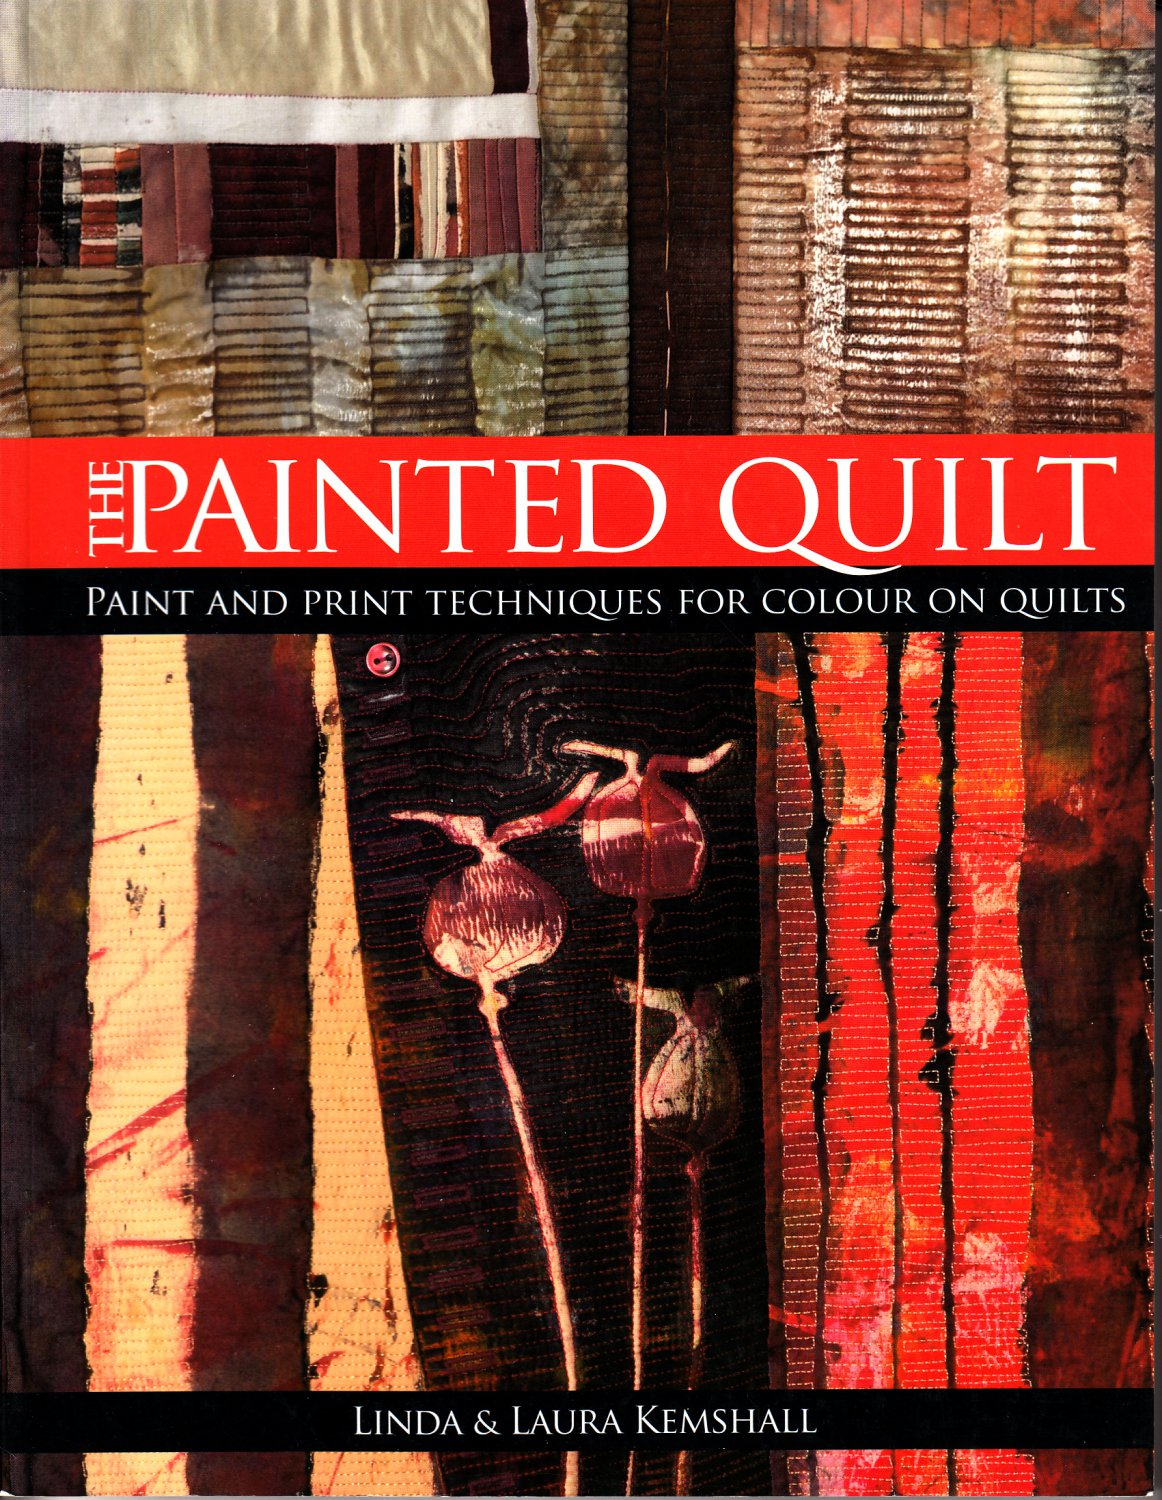 The Painted Quilt by Linda & Laura Kemshall (Quilting, 2007)